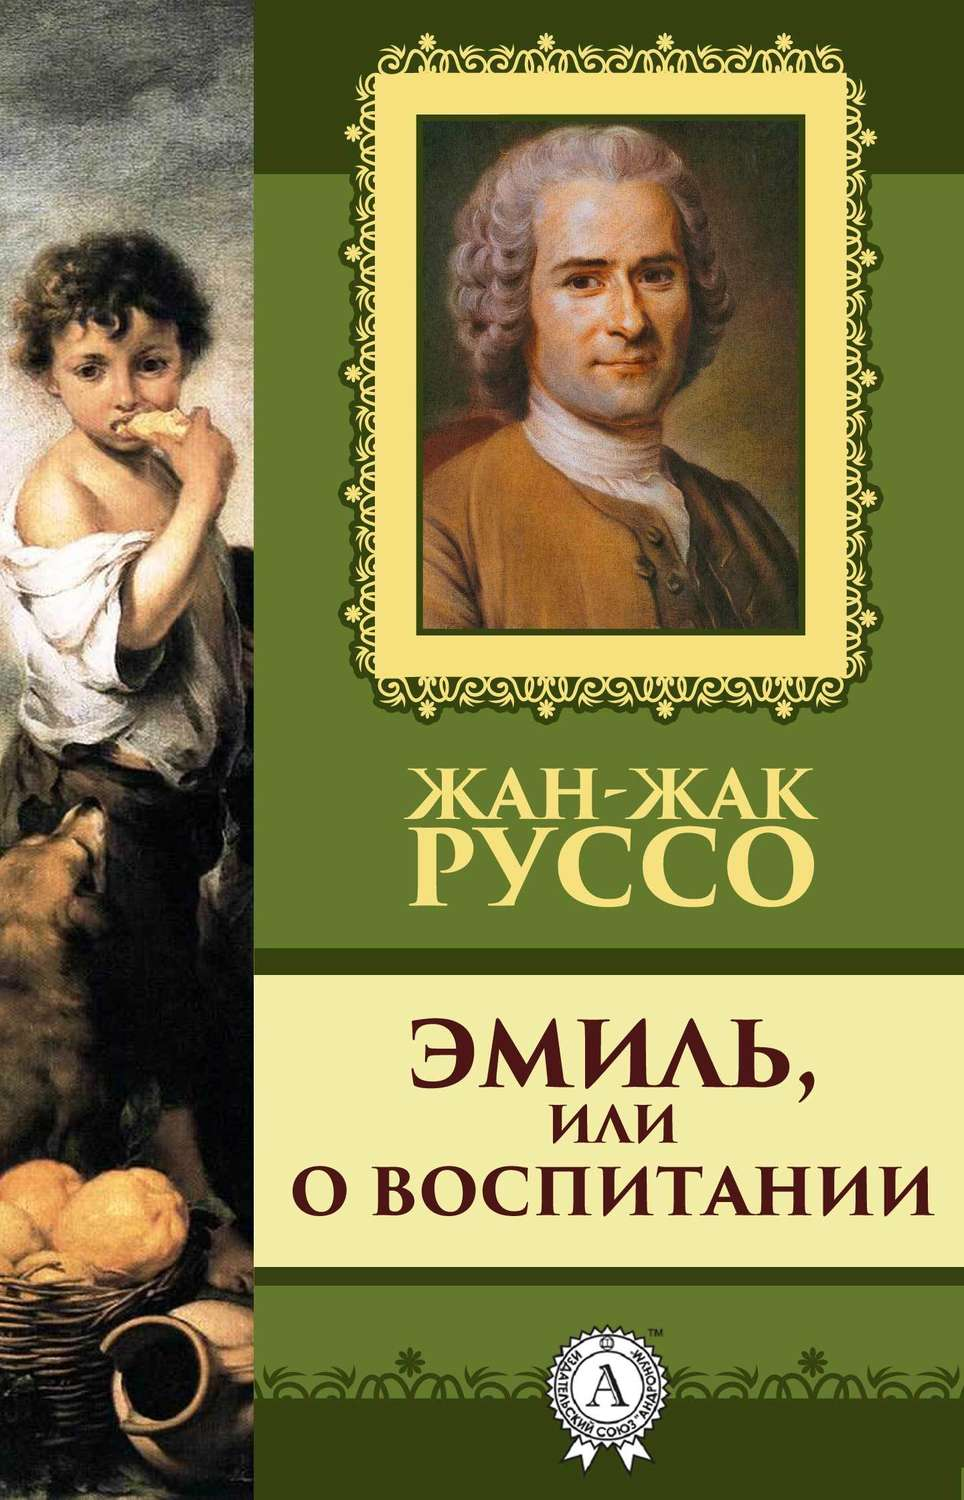 account of the life and works of jean jacques rousseau This is an account of a series of the life and writings of jean-jacques rousseau contradictions form a prominent theme in rousseau's life and works.